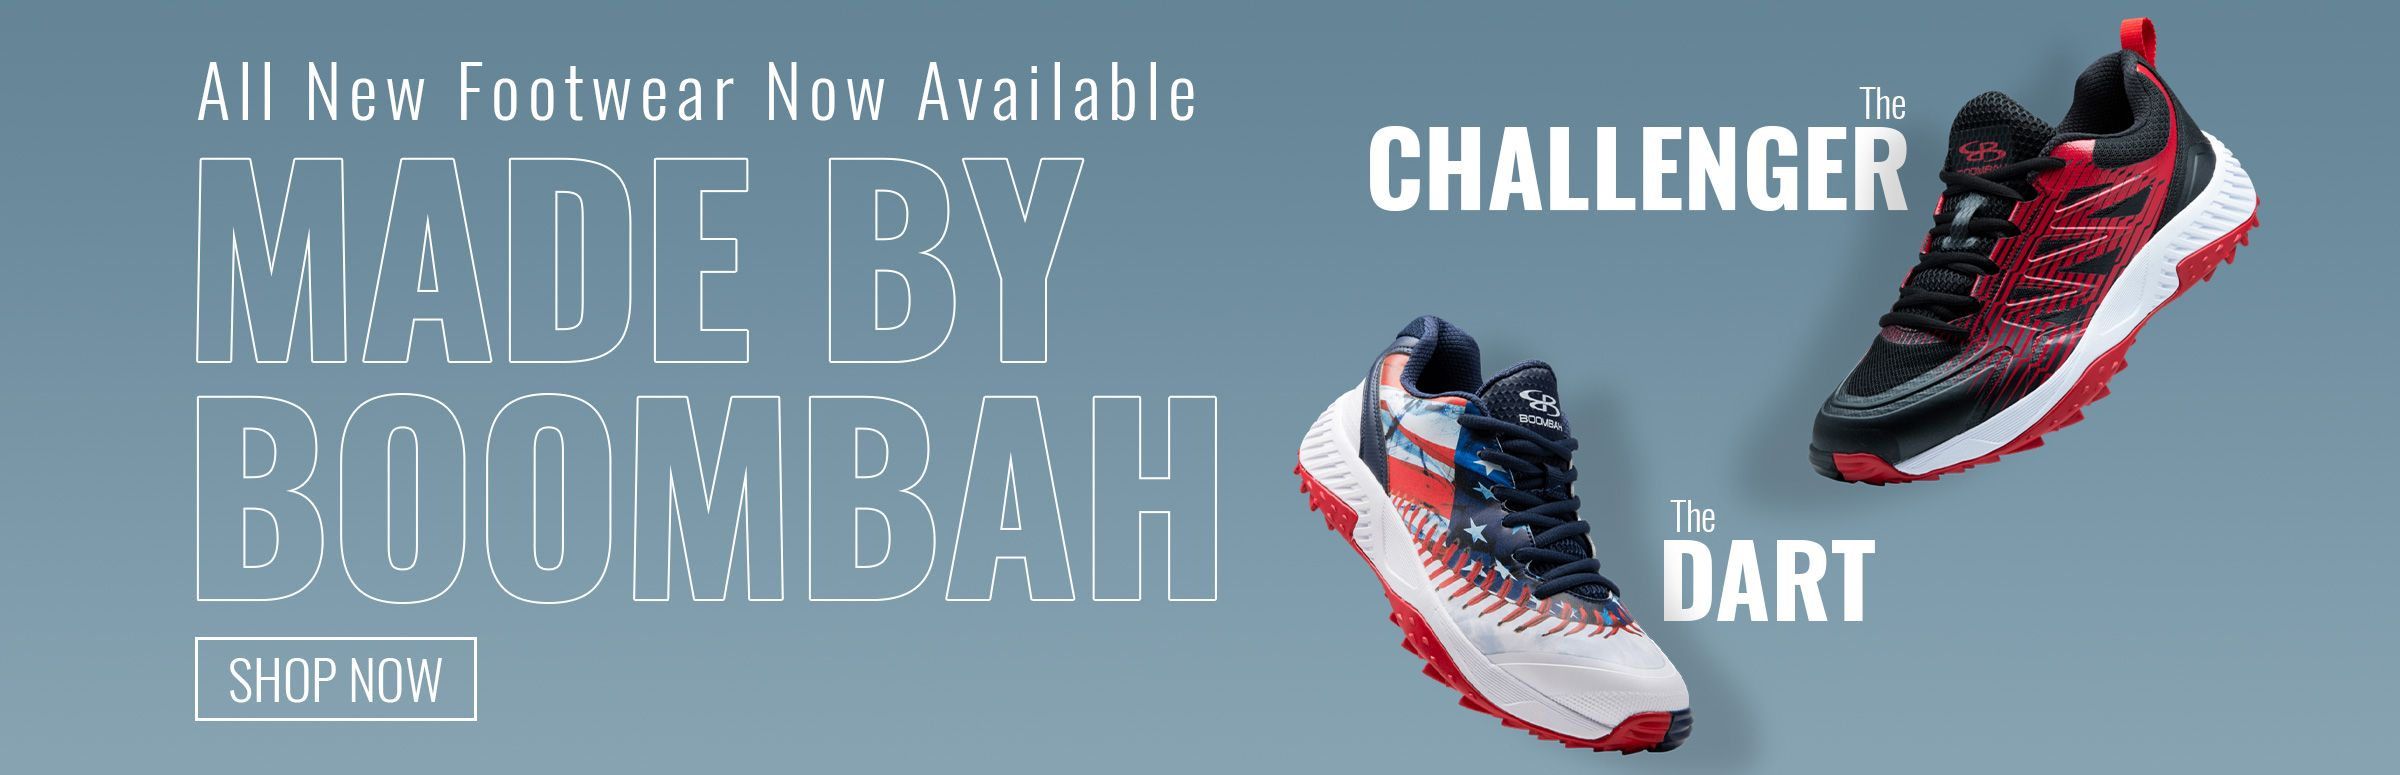 All New Footwear Made By Boombah